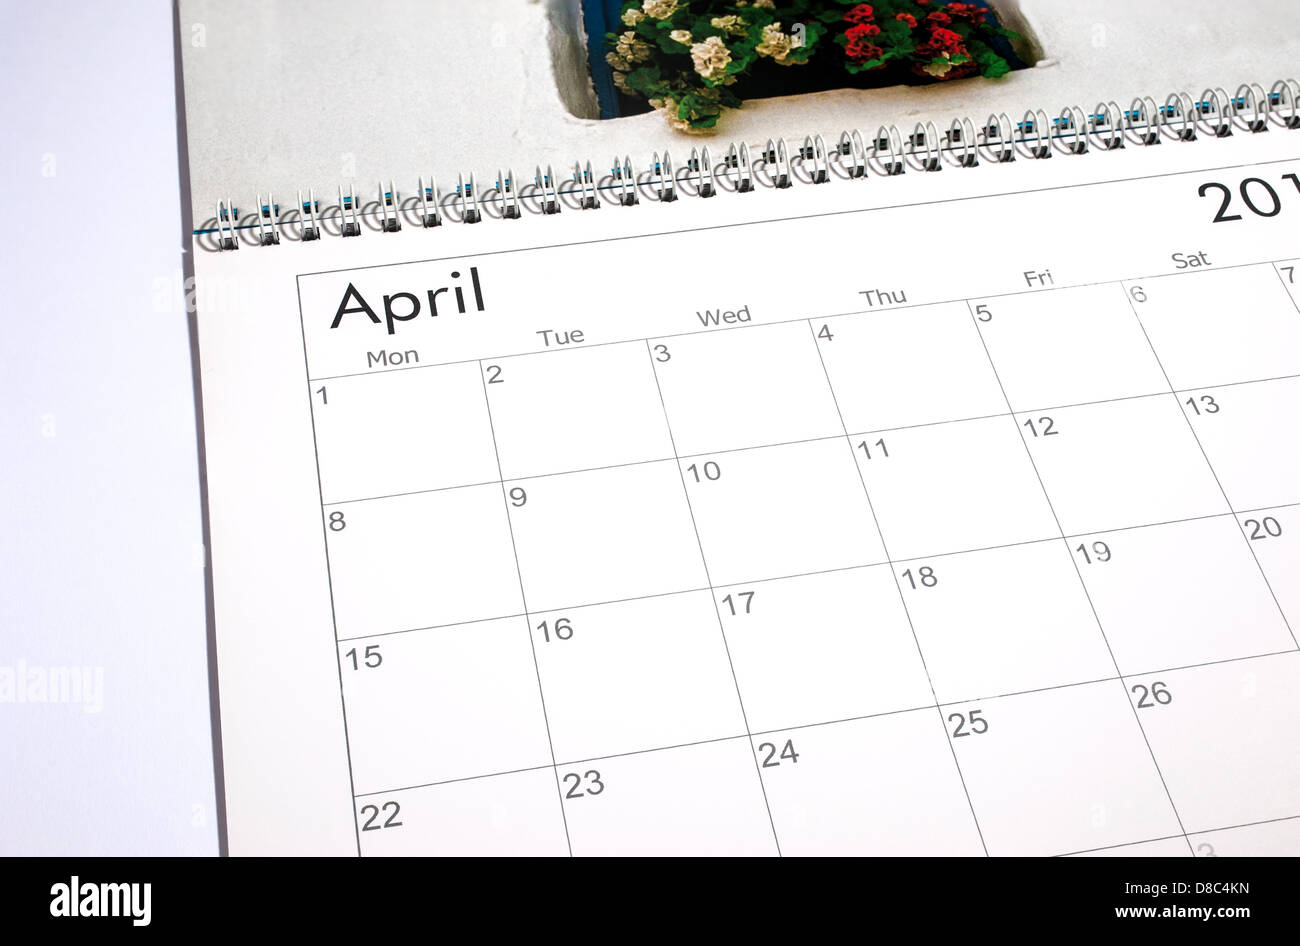 Calendrier vide page - Avril 2013 Photo Stock